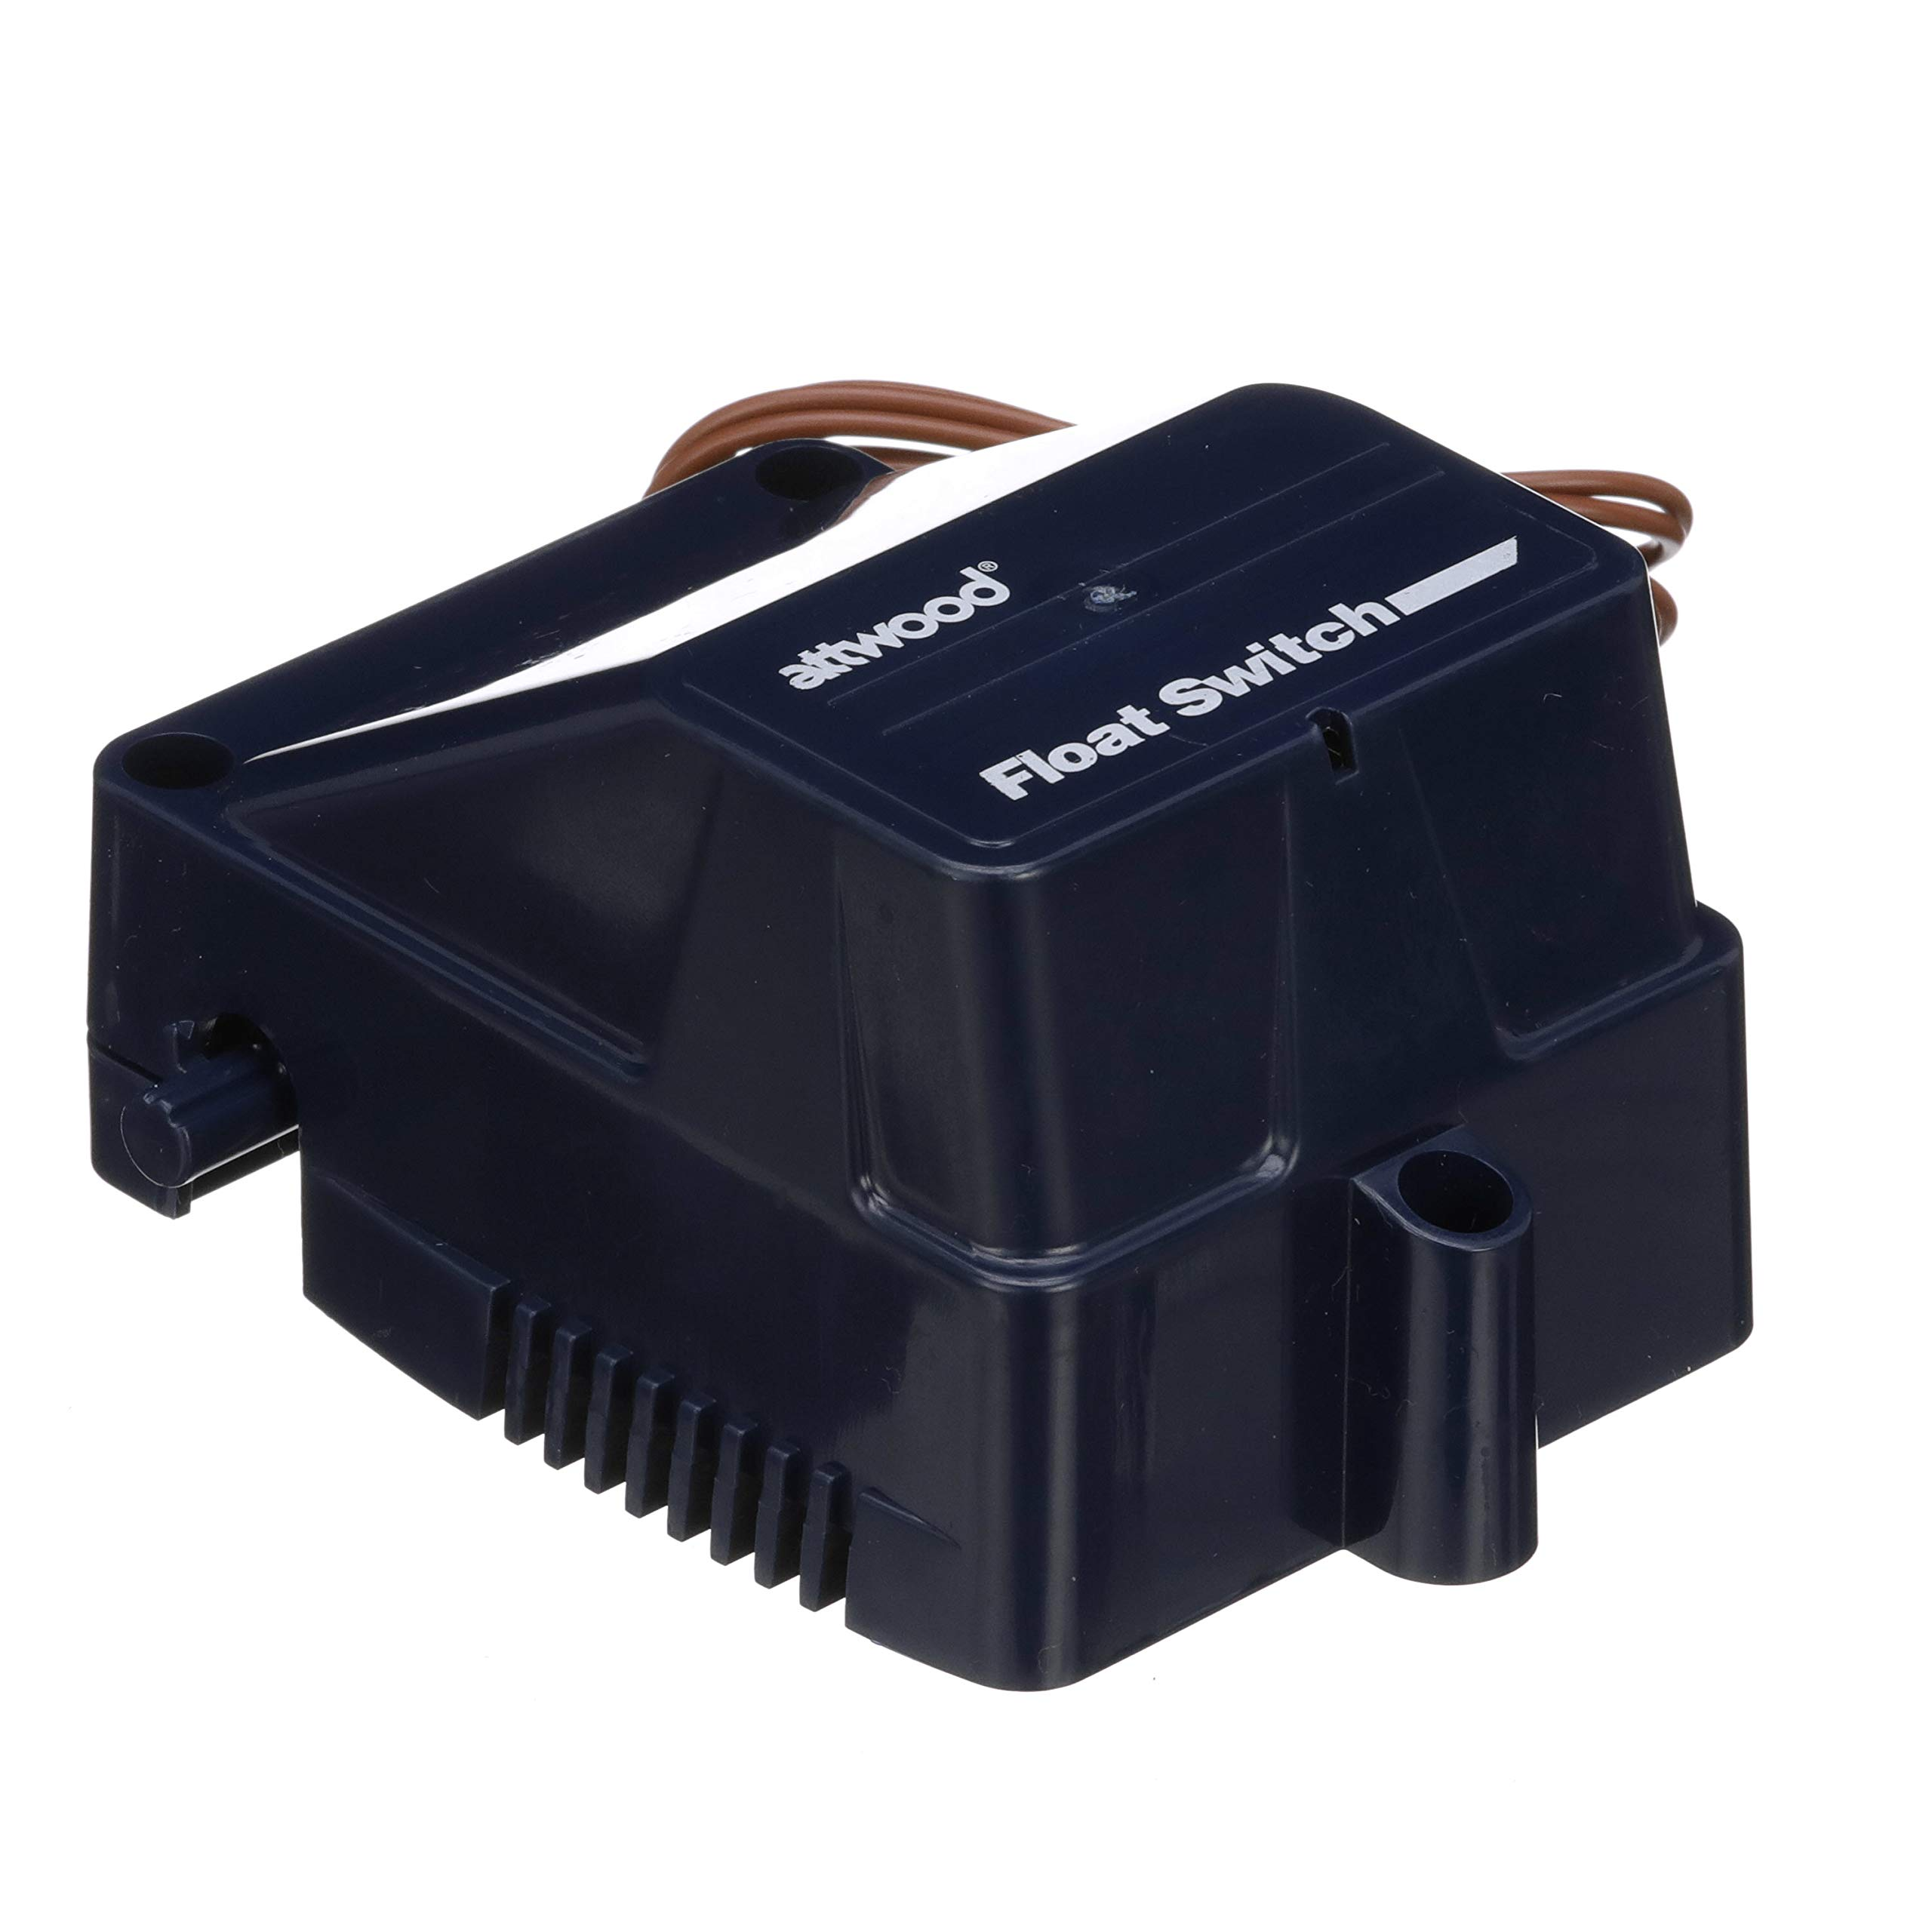 attwood 4201-7 Automatic Float Switch with Cover, One Size